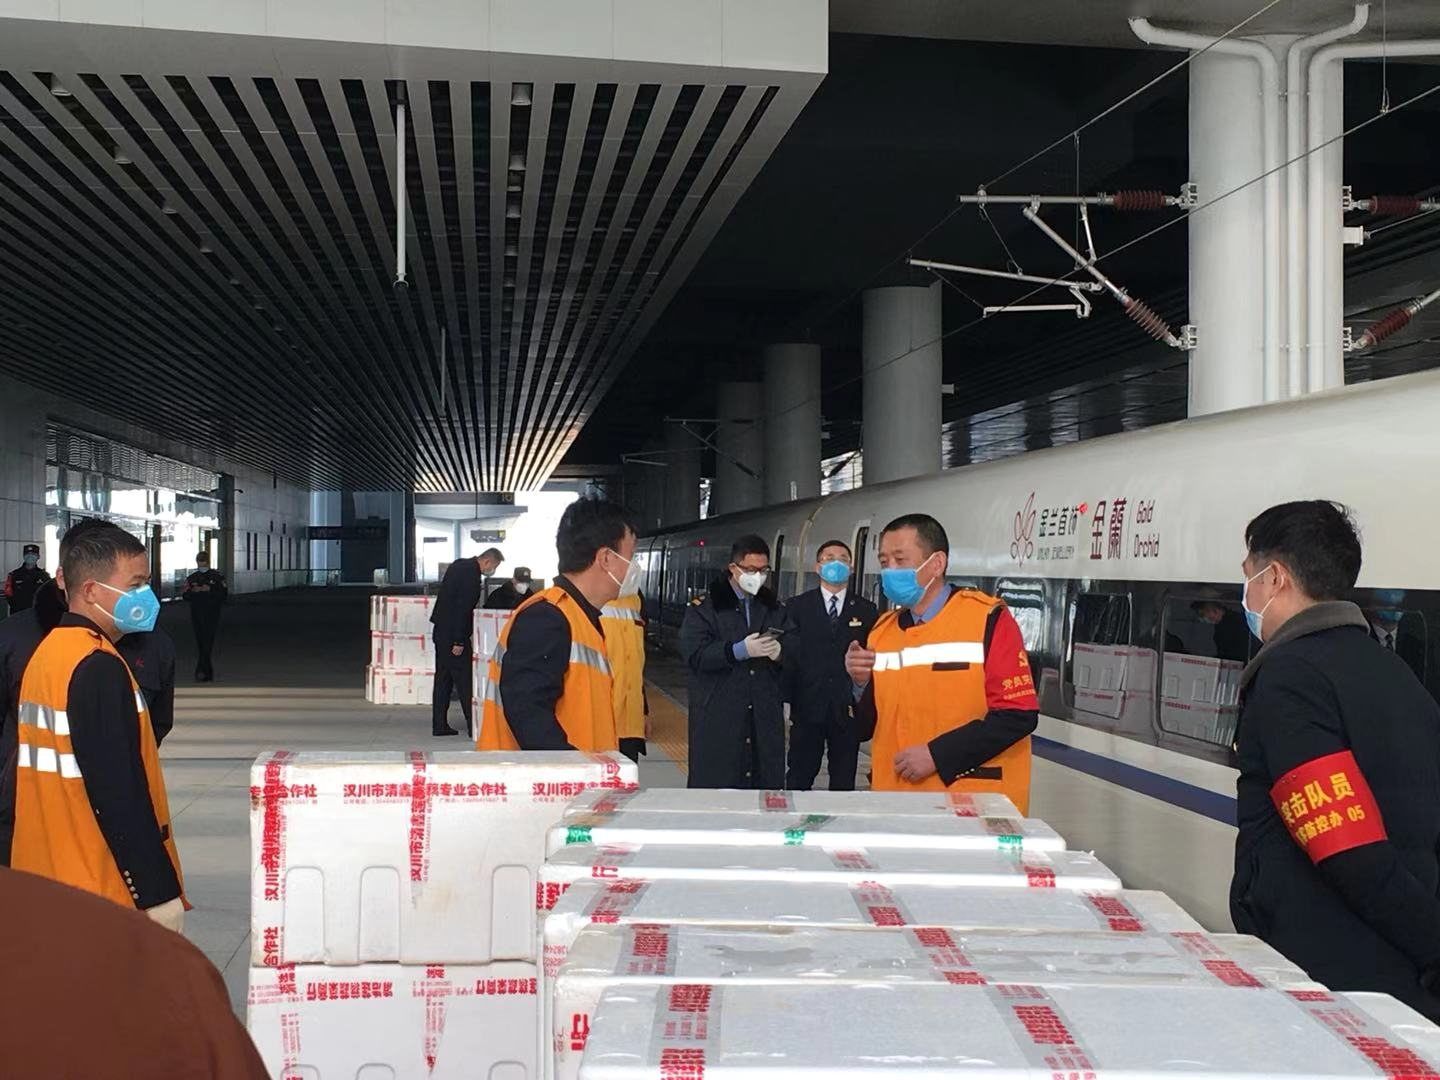 Jiaye Wu's father, who holds a senior position in the rail system, was working at the frontline during the coronavirus outbreak in Wuhan, China.